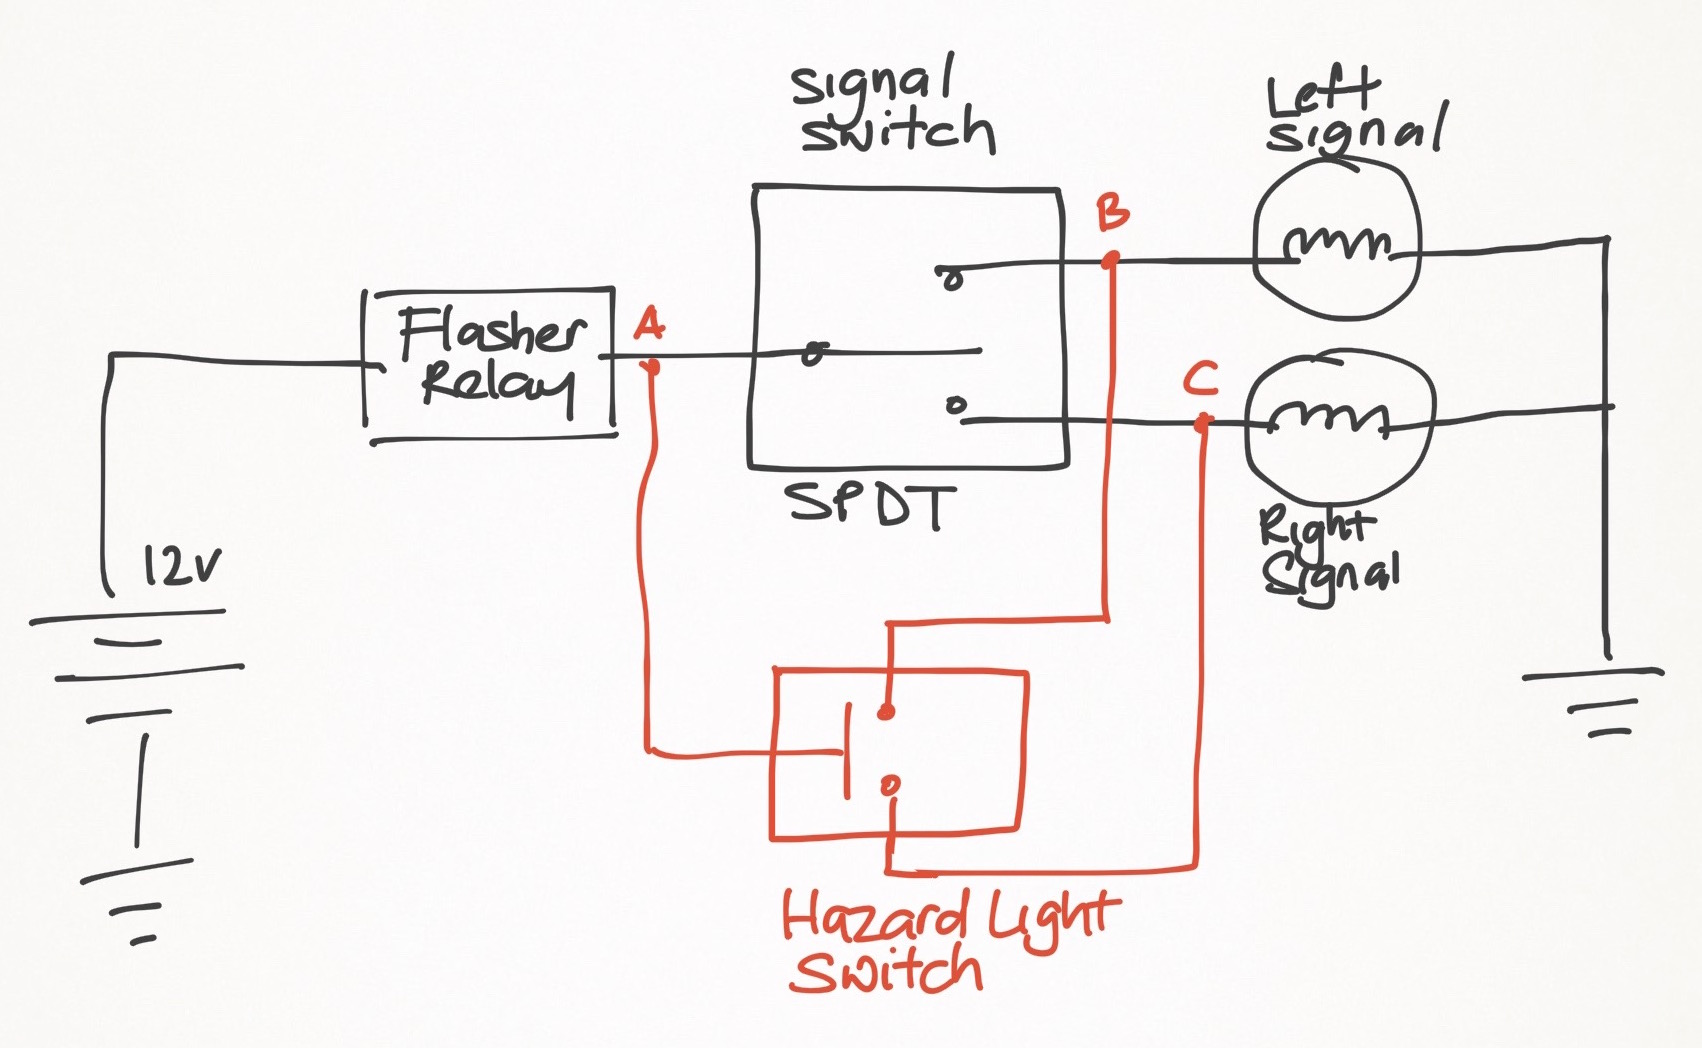 hazard switch wiring ngs wiring diagram rh 4 hjdfbg labrador und golden retriever vom ha Signal Light Wiring Diagram Signal Light Wiring Diagram